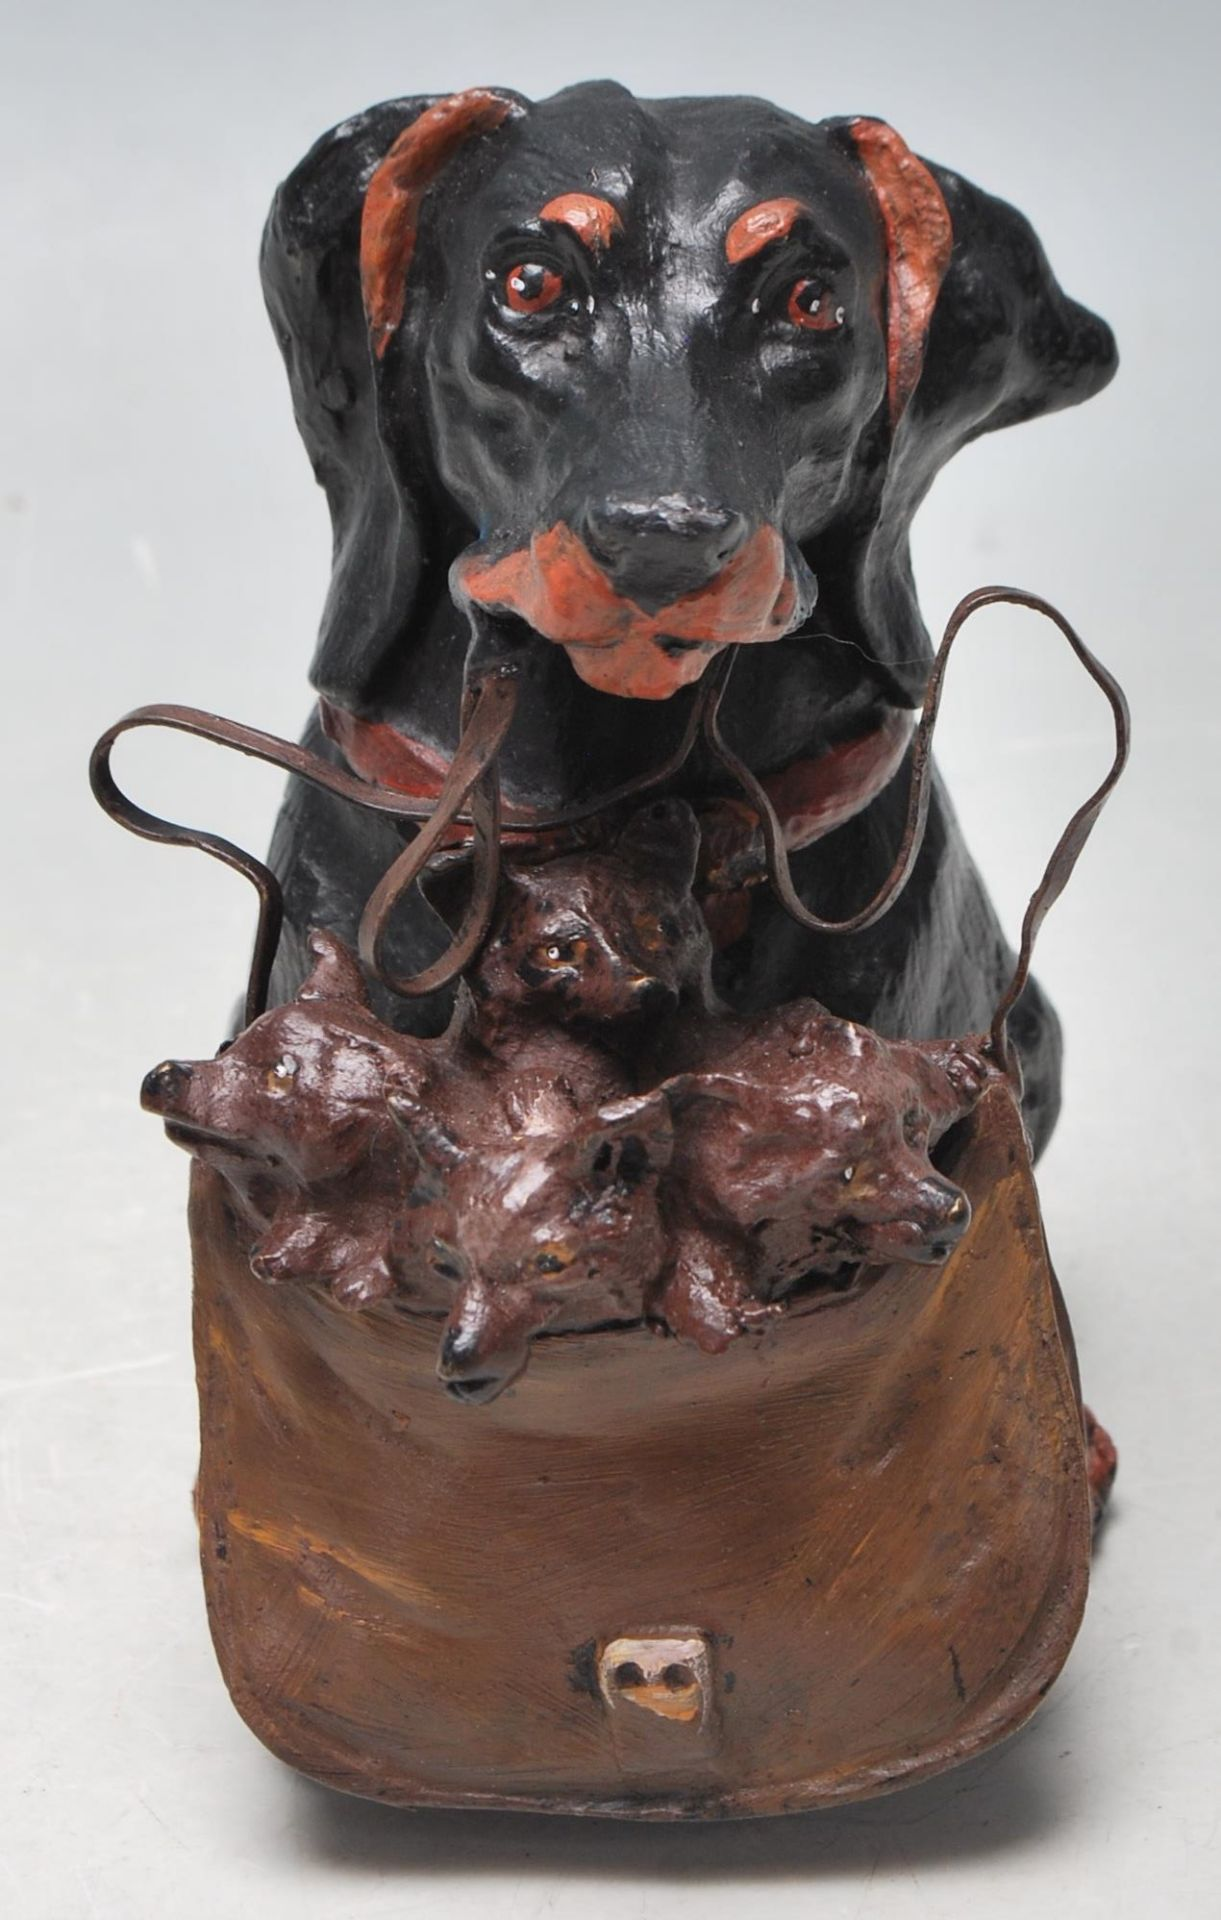 AUSTRIAN STYLE COLDPLAINTED BRONZE DACHSHUND INKWELL - Image 5 of 5